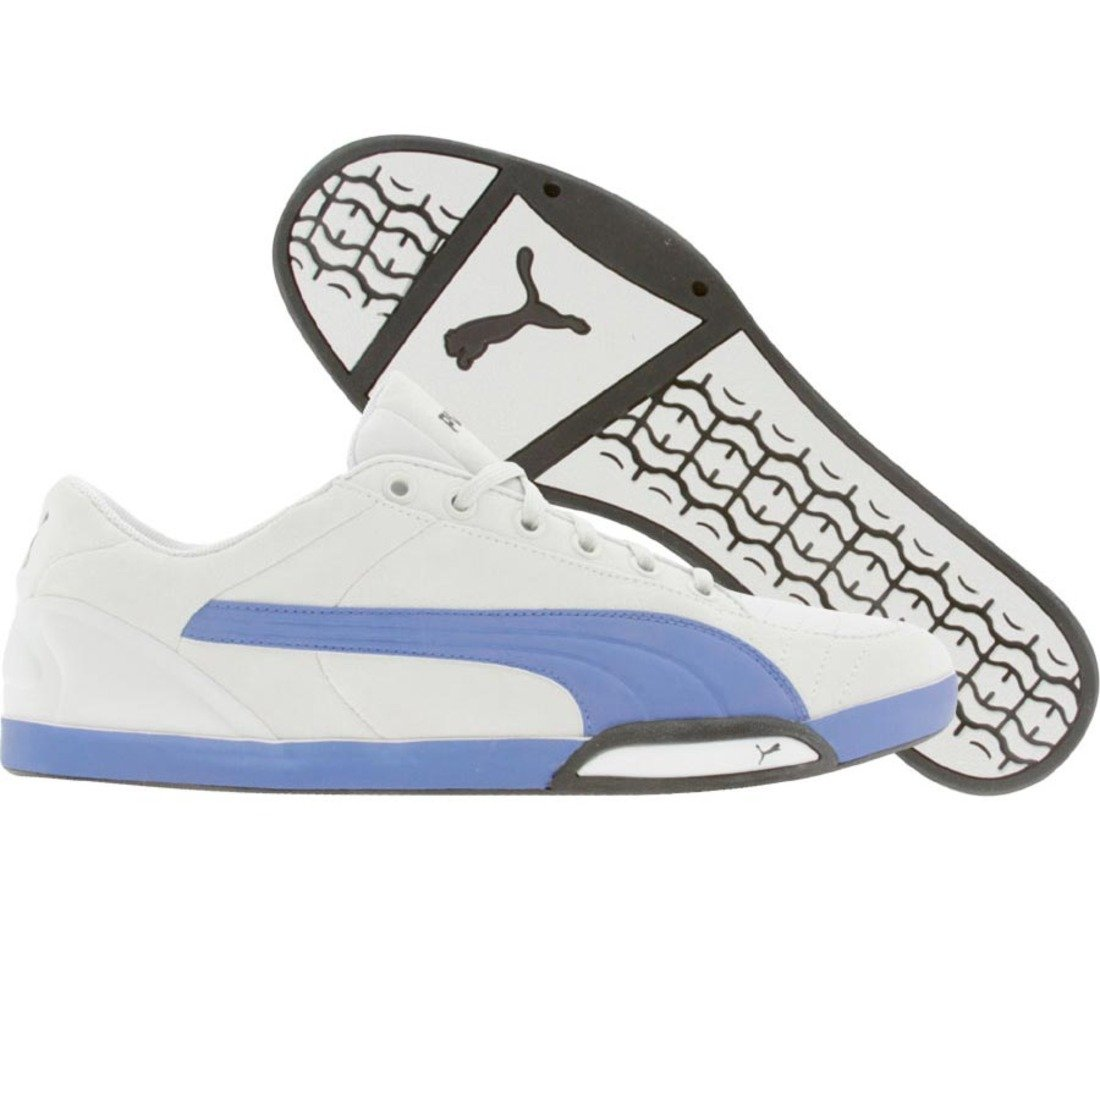 PUMA 65Cc LO Sneaker,White Royal,US Women's 13.5 B/US Men's 12 D